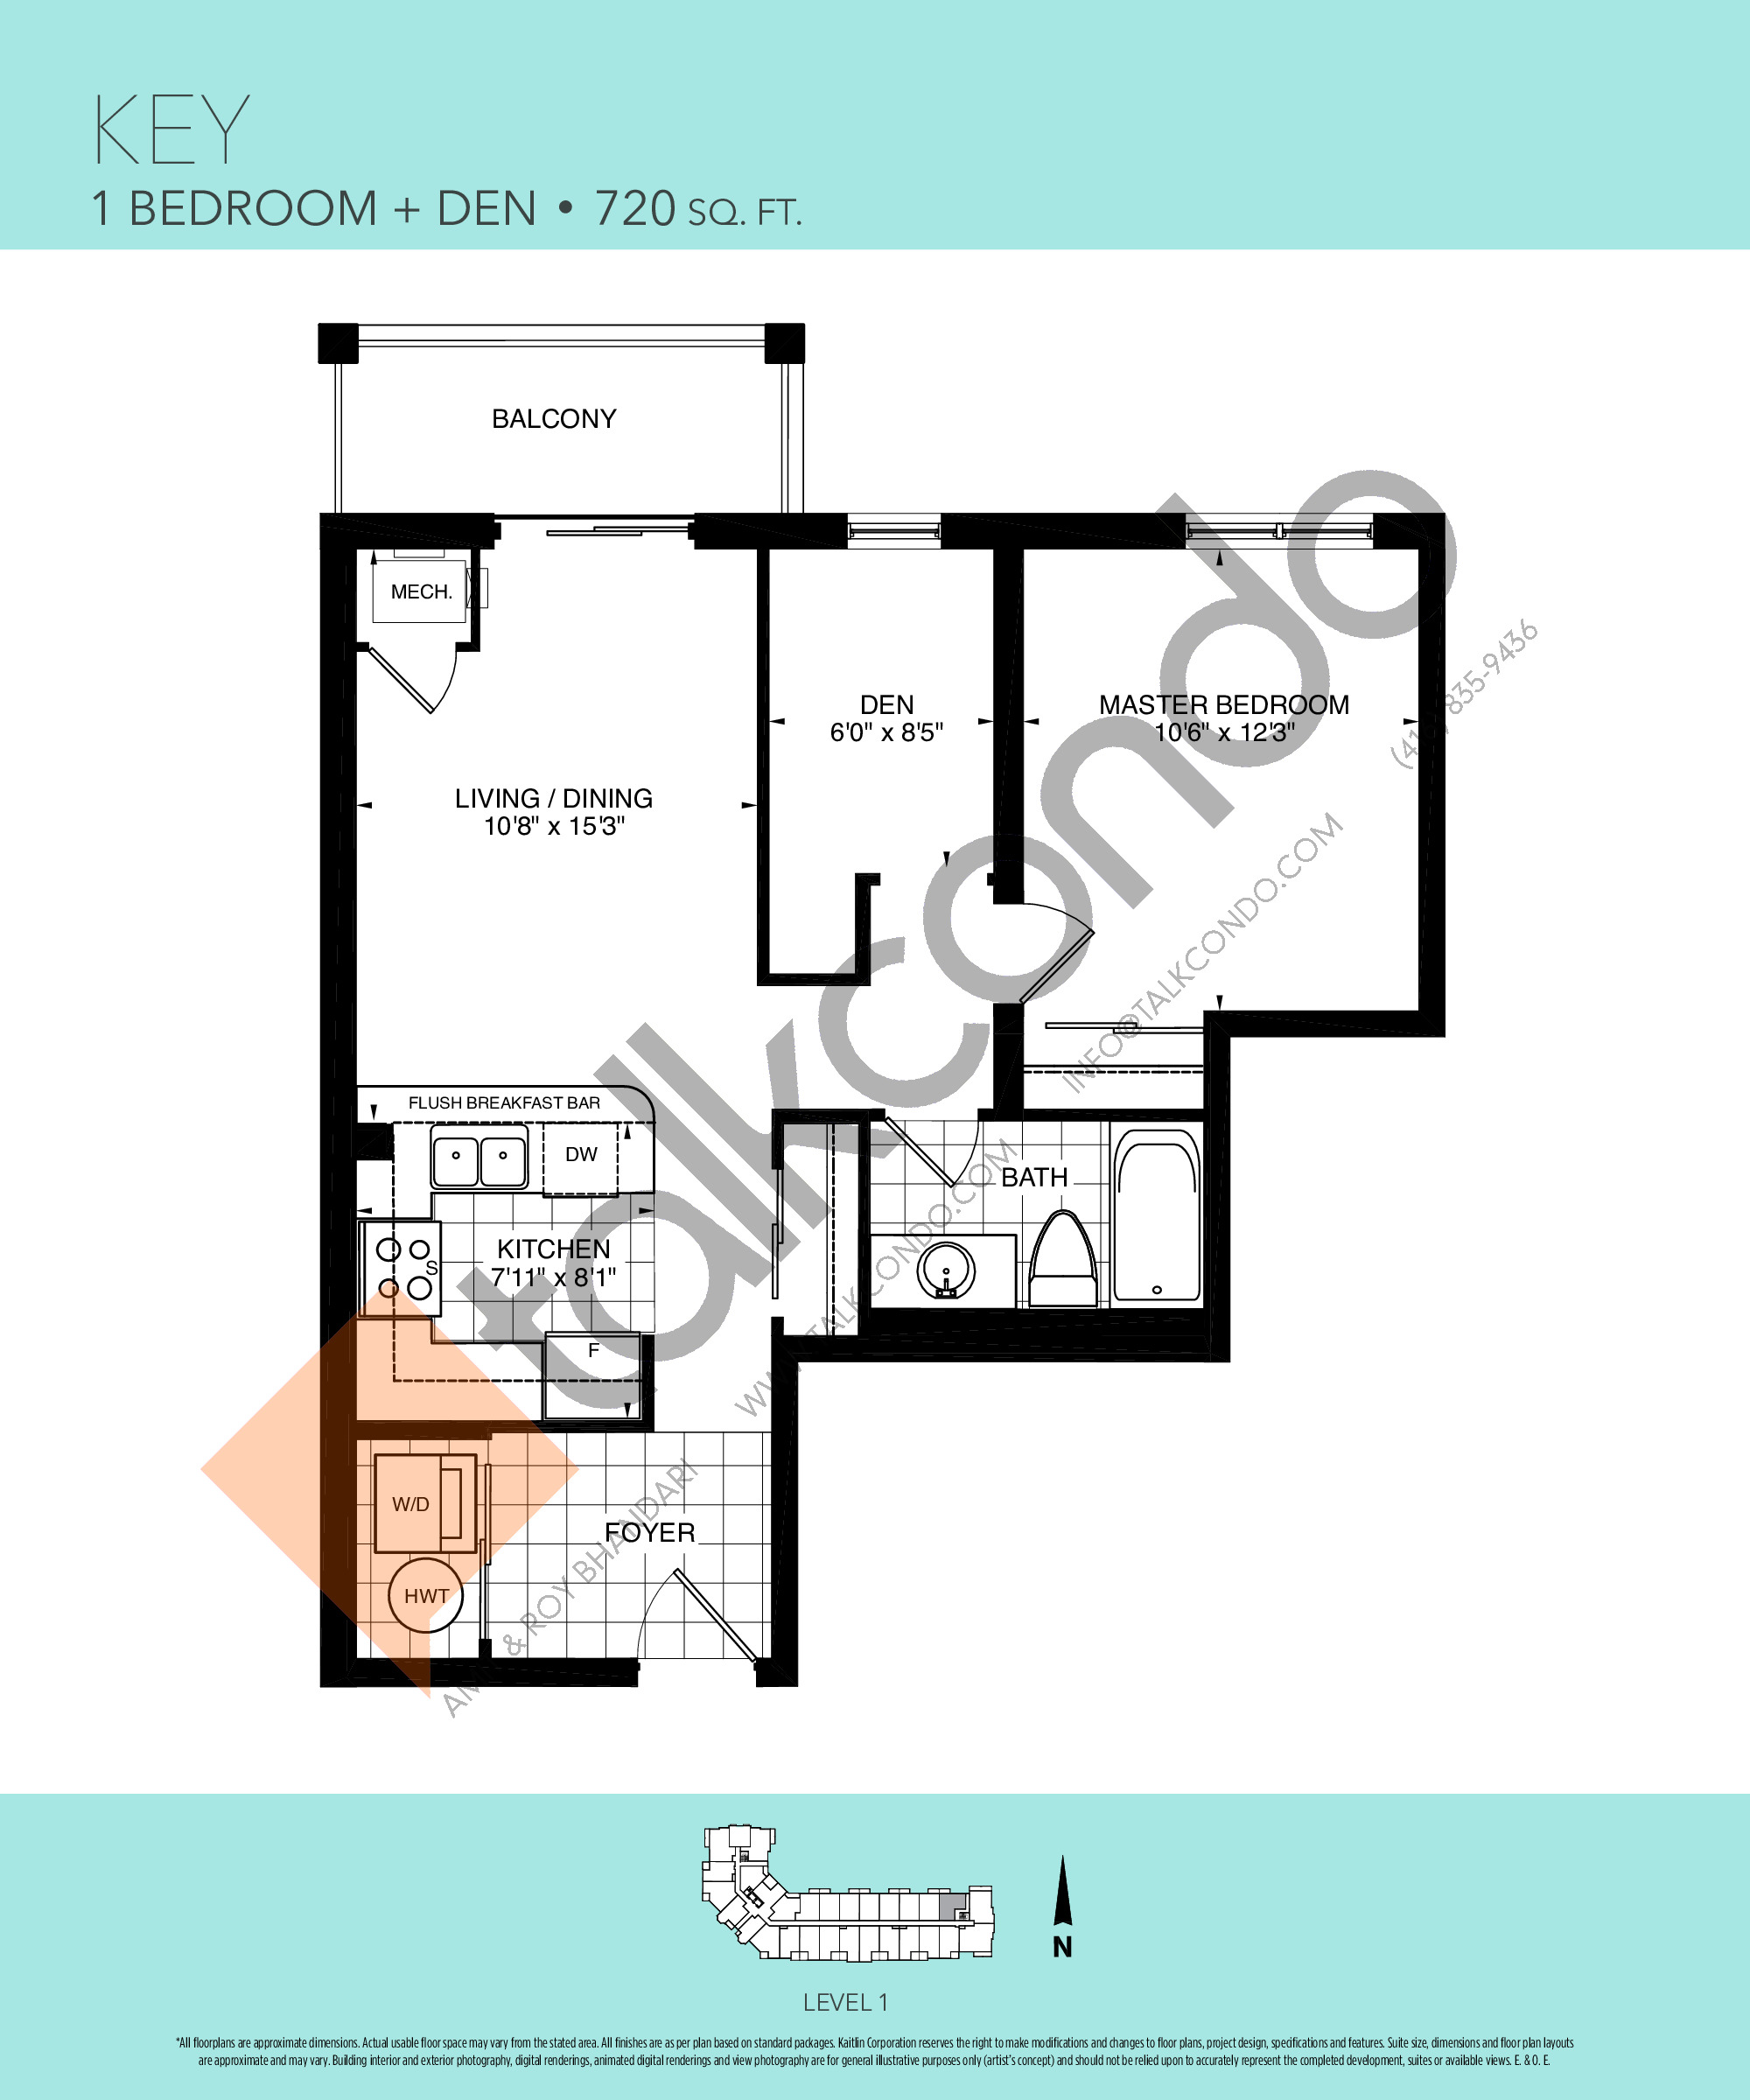 Key Floor Plan at Harbourview Grand Condos - 720 sq.ft